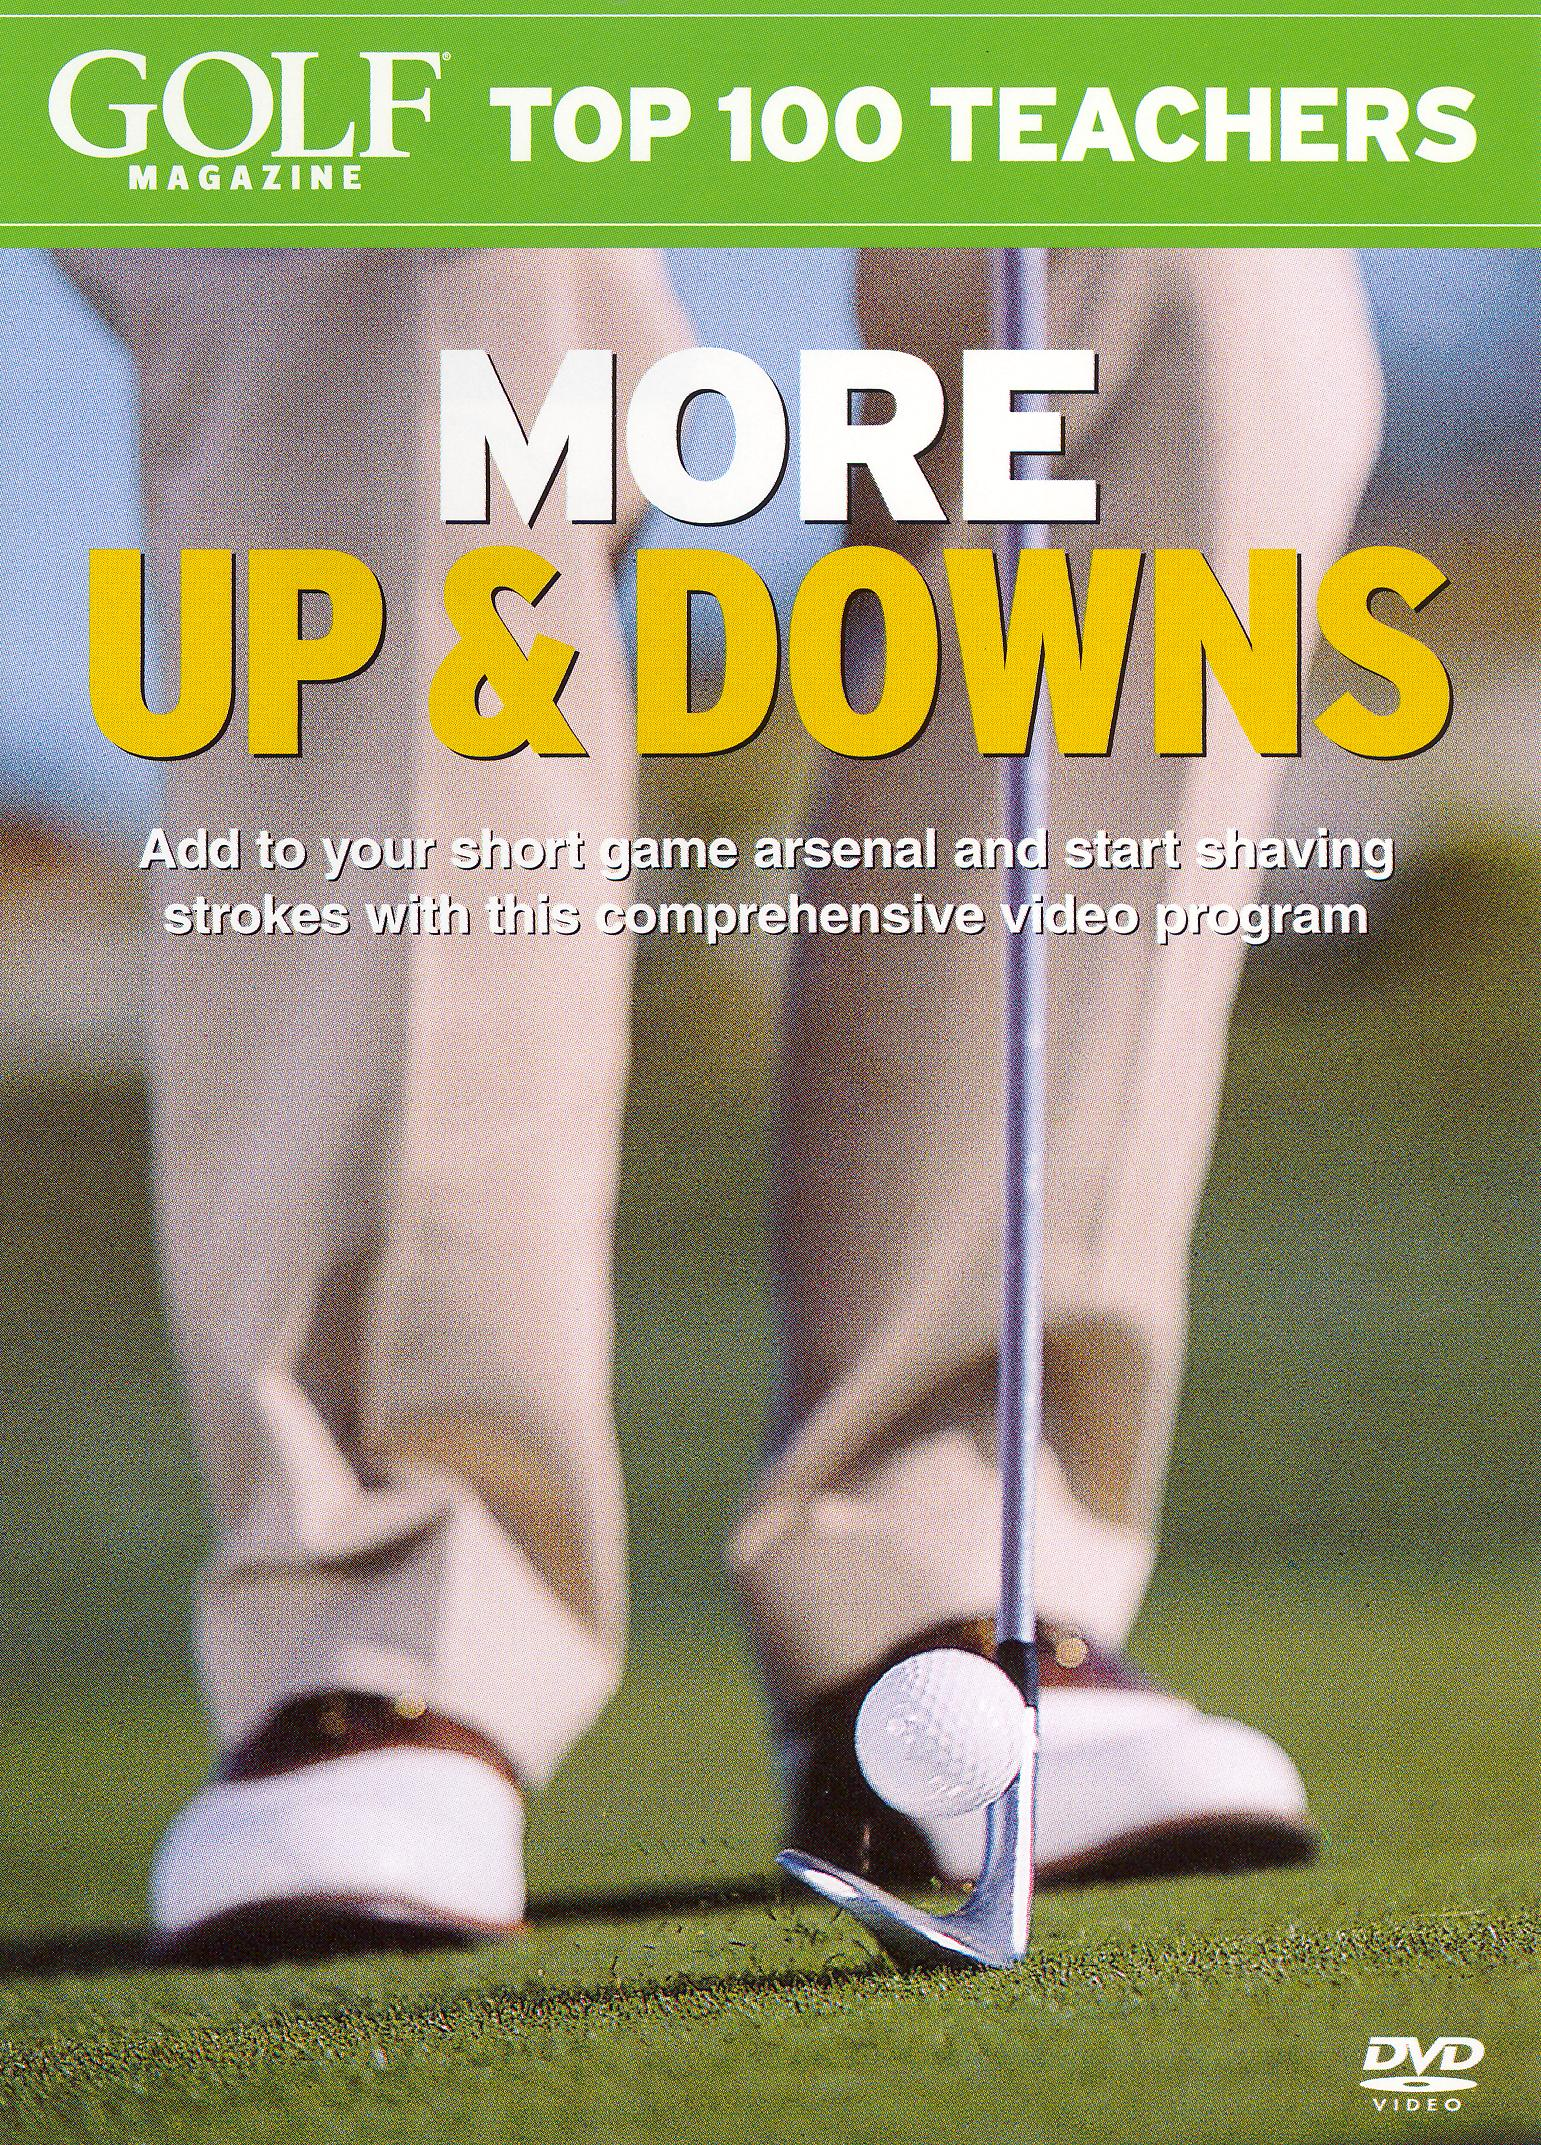 Golf Magazine: Top 100 Teachers - More Up and Downs